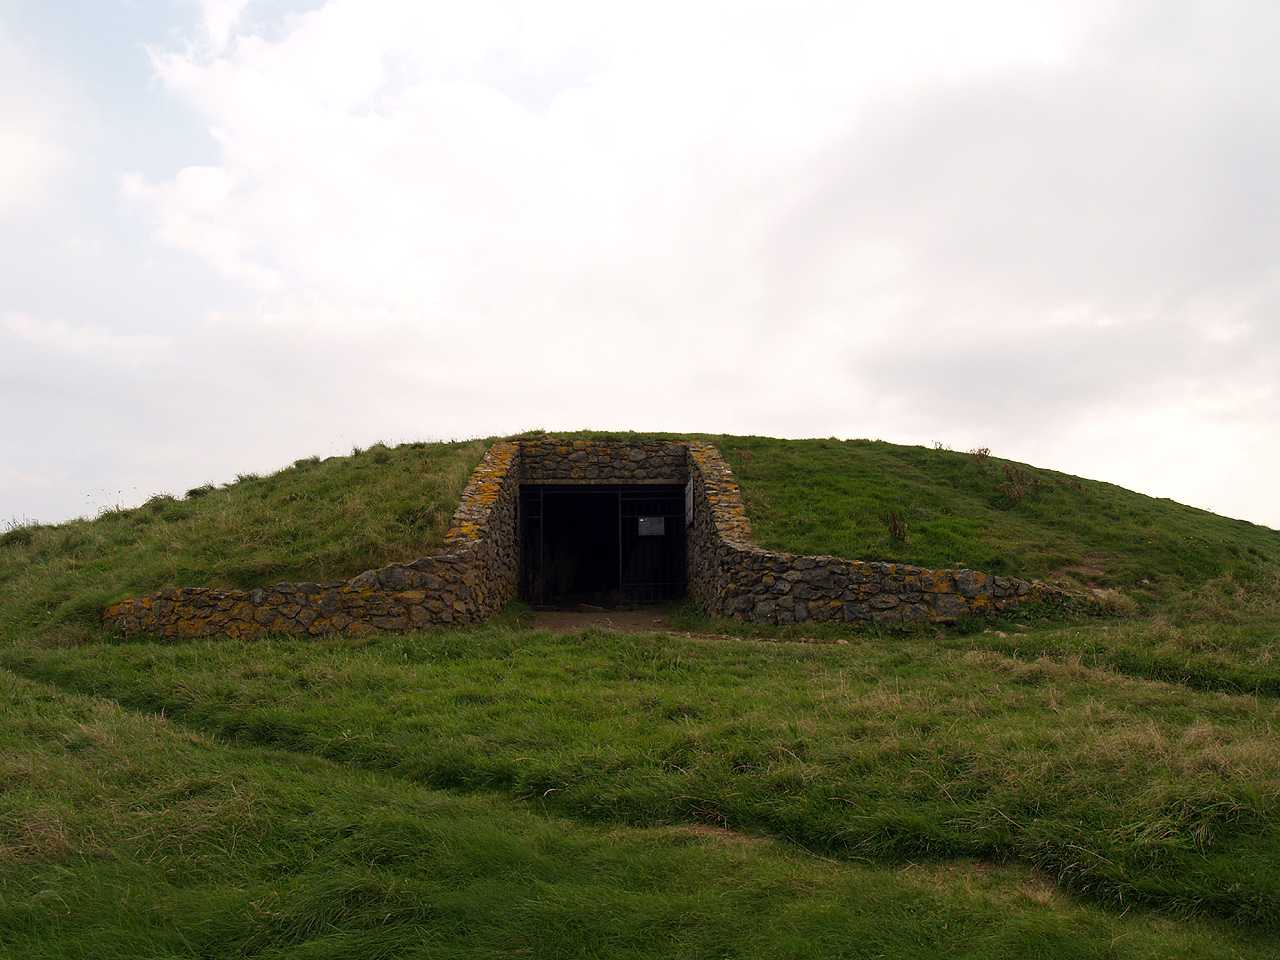 Anglesey, Llanfaelog, Barclodiad-y-Gawres Burial Chamber - Front Entrance and Mound